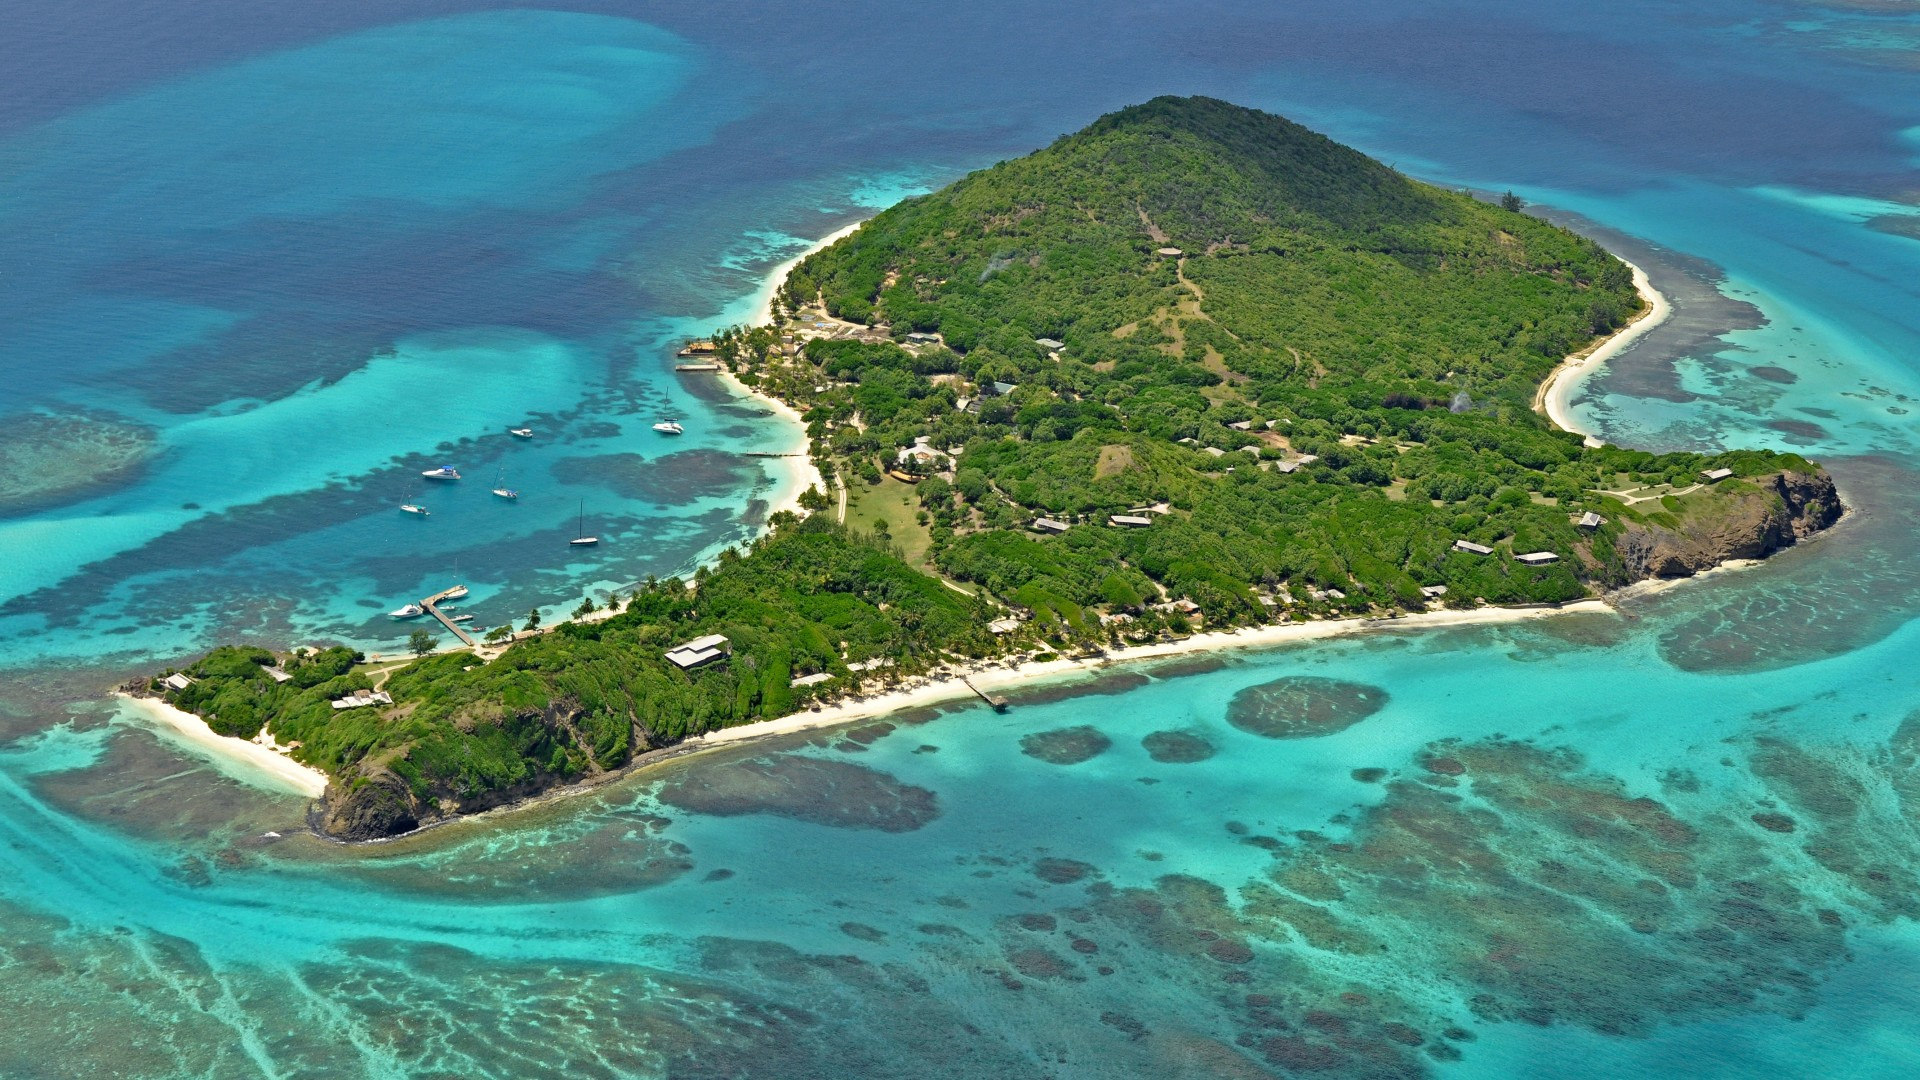 The island of Petit St Vincent